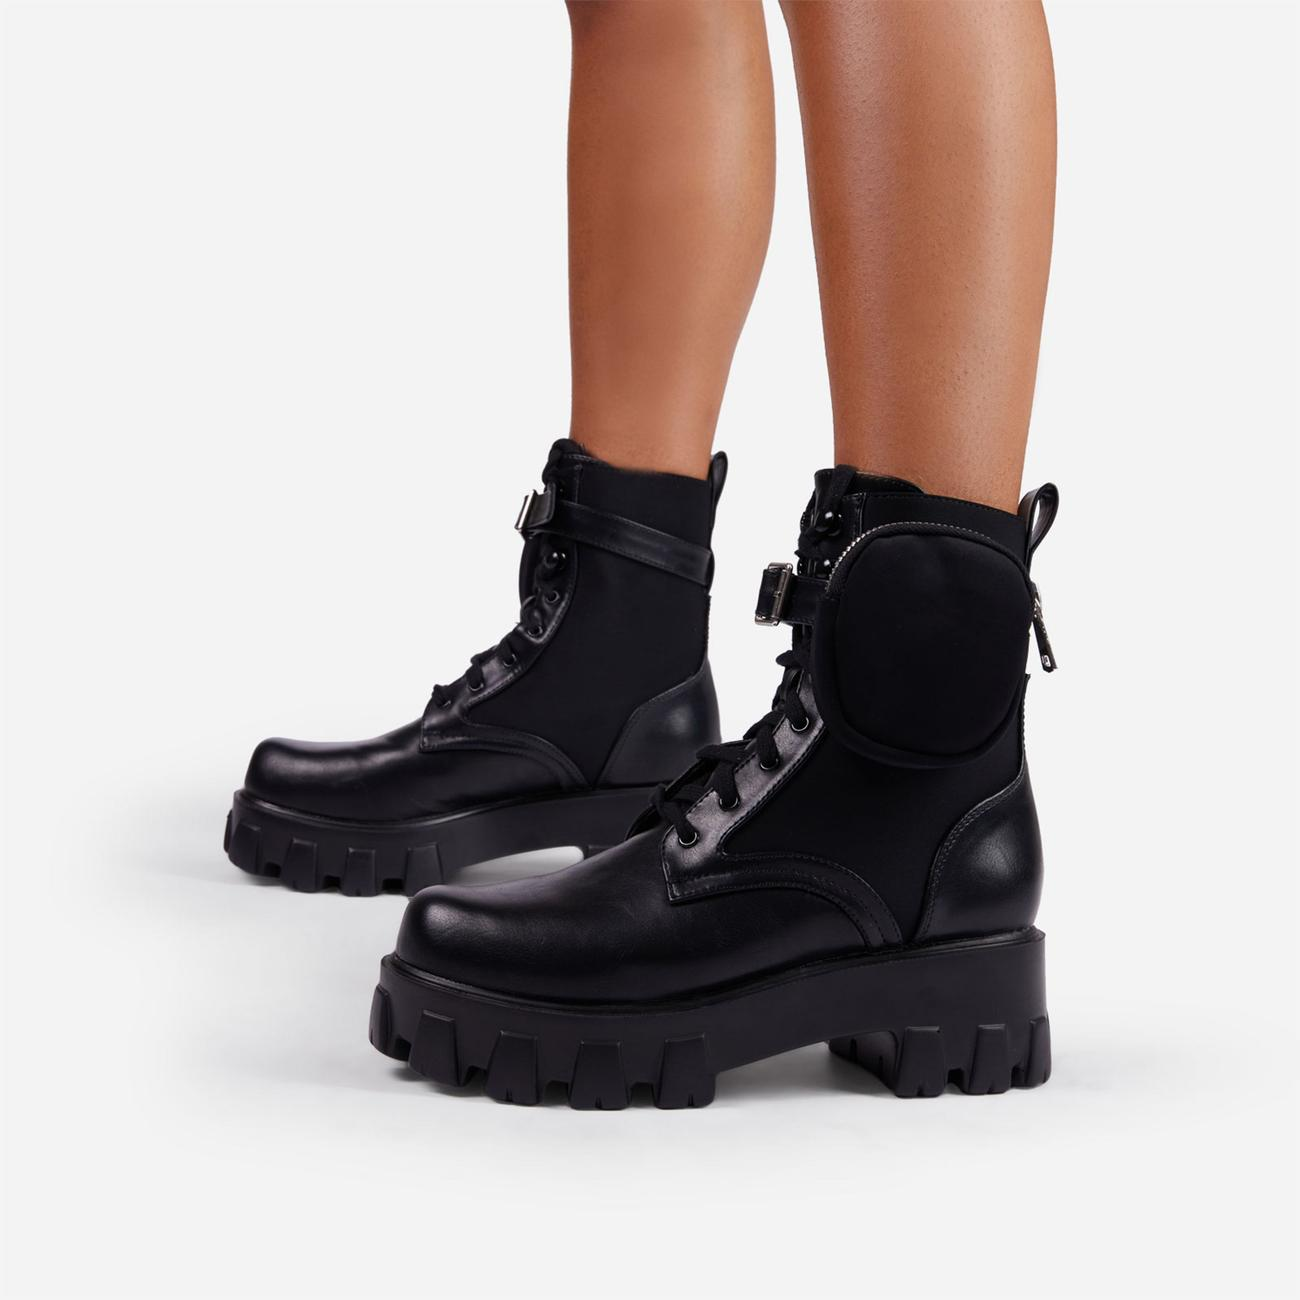 Flame Pocket Detail Lace Up Chunky Sole Ankle Biker Boot In Black Faux Leather Image 3